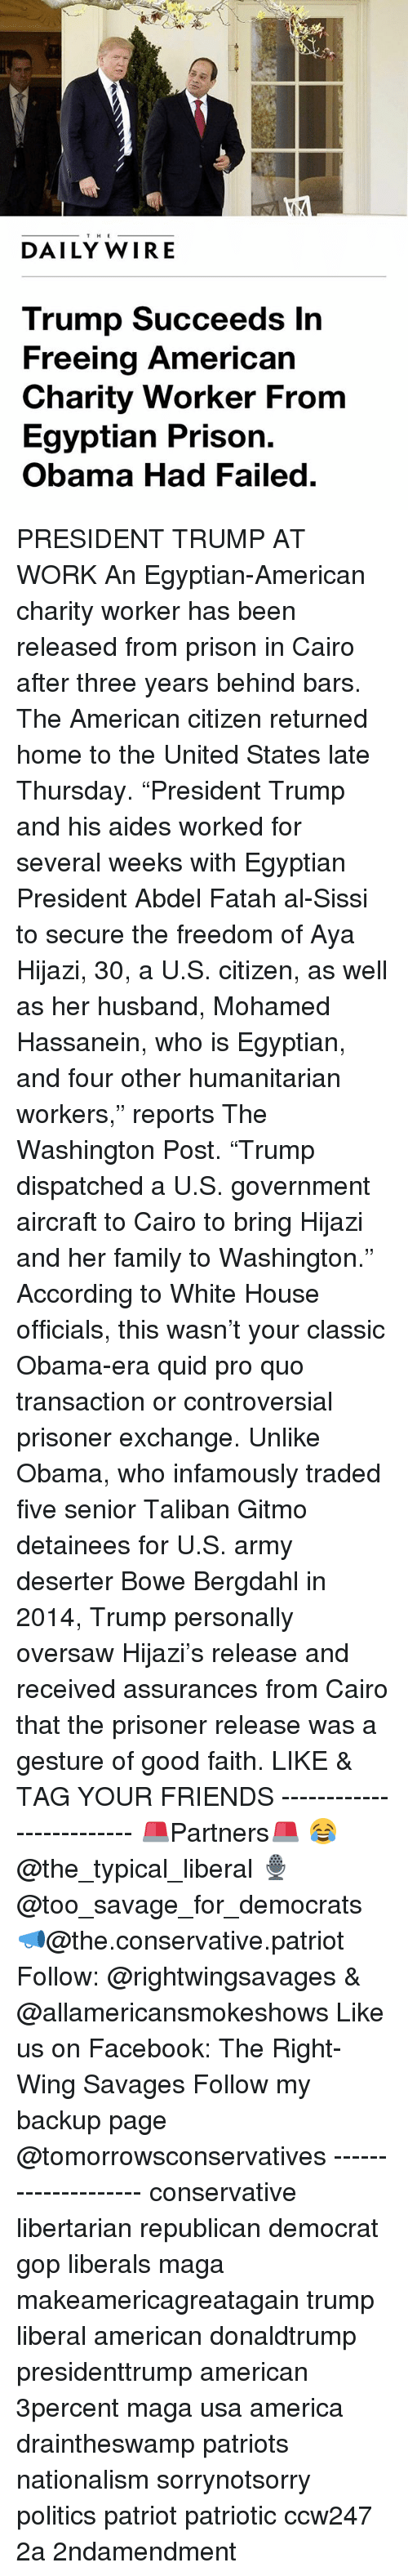 "Talibanned: THE  DAILY WIRE  Trump Succeeds In  Freeing American  Charity Worker From  Egyptian Prison.  Obama Had Failed PRESIDENT TRUMP AT WORK An Egyptian-American charity worker has been released from prison in Cairo after three years behind bars. The American citizen returned home to the United States late Thursday. ""President Trump and his aides worked for several weeks with Egyptian President Abdel Fatah al-Sissi to secure the freedom of Aya Hijazi, 30, a U.S. citizen, as well as her husband, Mohamed Hassanein, who is Egyptian, and four other humanitarian workers,"" reports The Washington Post. ""Trump dispatched a U.S. government aircraft to Cairo to bring Hijazi and her family to Washington."" According to White House officials, this wasn't your classic Obama-era quid pro quo transaction or controversial prisoner exchange. Unlike Obama, who infamously traded five senior Taliban Gitmo detainees for U.S. army deserter Bowe Bergdahl in 2014, Trump personally oversaw Hijazi's release and received assurances from Cairo that the prisoner release was a gesture of good faith. LIKE & TAG YOUR FRIENDS ------------------------- 🚨Partners🚨 😂@the_typical_liberal 🎙@too_savage_for_democrats 📣@the.conservative.patriot Follow: @rightwingsavages & @allamericansmokeshows Like us on Facebook: The Right-Wing Savages Follow my backup page @tomorrowsconservatives -------------------- conservative libertarian republican democrat gop liberals maga makeamericagreatagain trump liberal american donaldtrump presidenttrump american 3percent maga usa america draintheswamp patriots nationalism sorrynotsorry politics patriot patriotic ccw247 2a 2ndamendment"